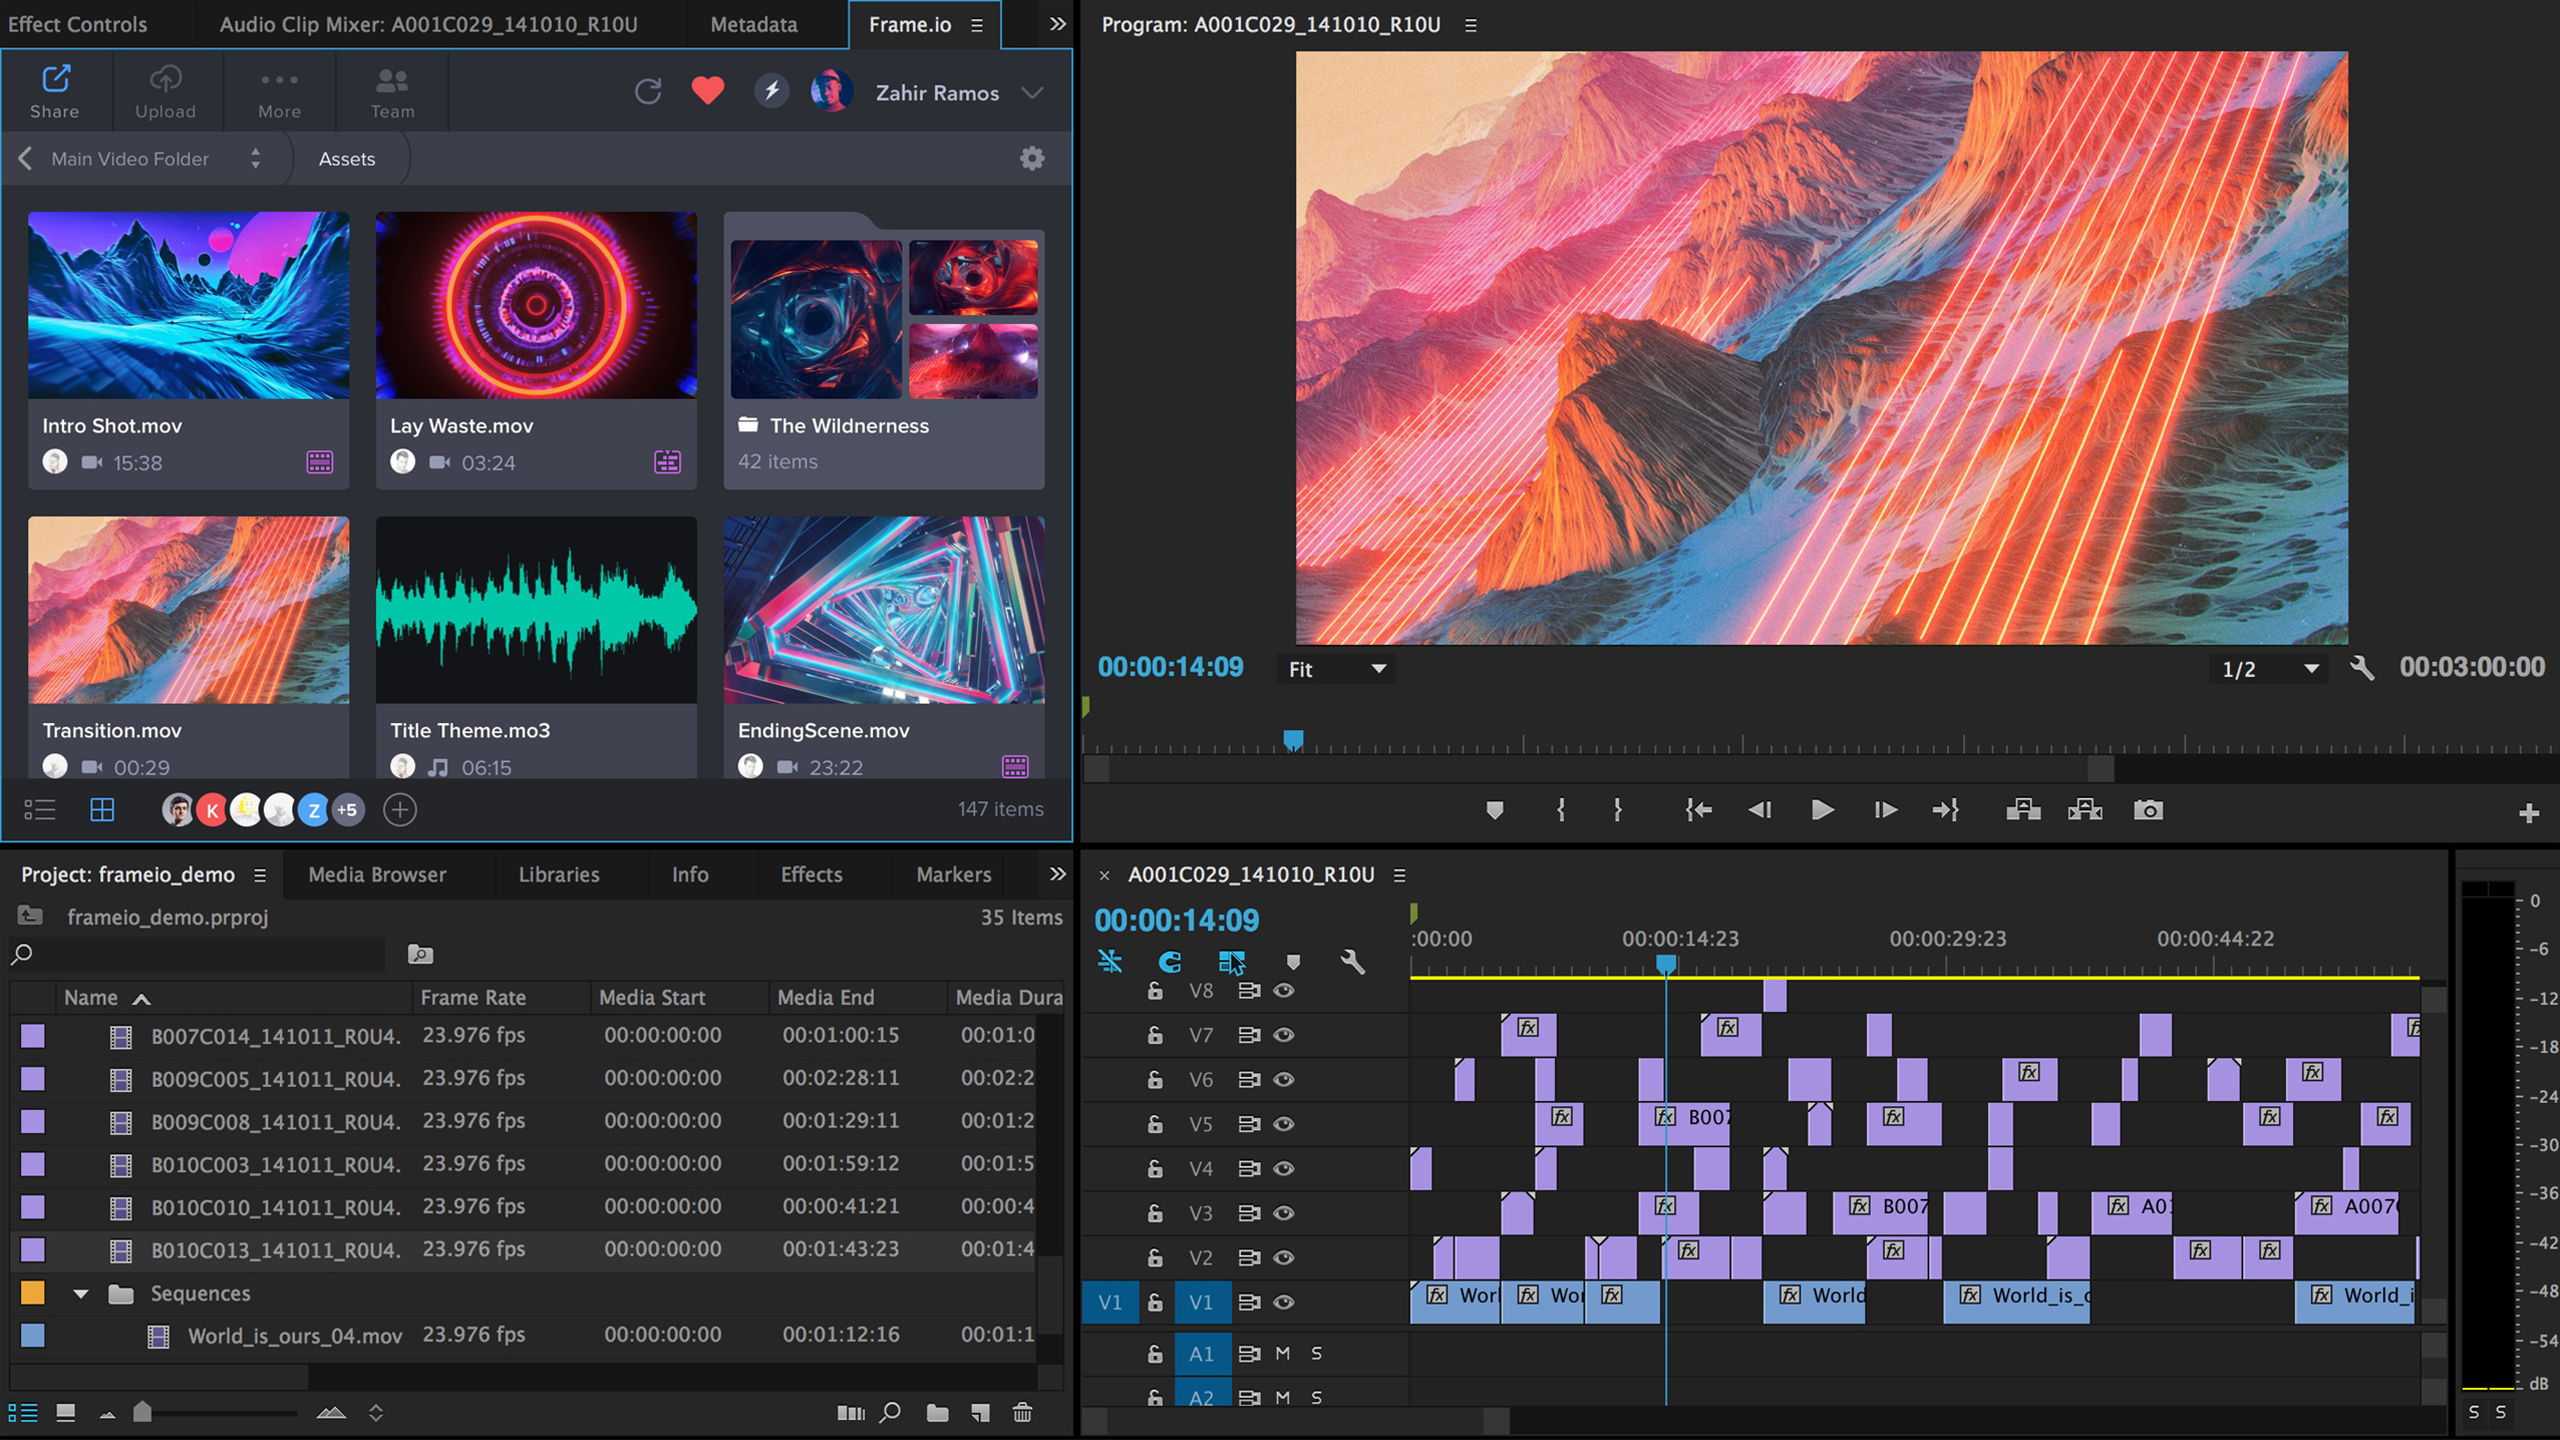 Frame.io brings reviewers comments onto the Timeline in Premiere Pro.